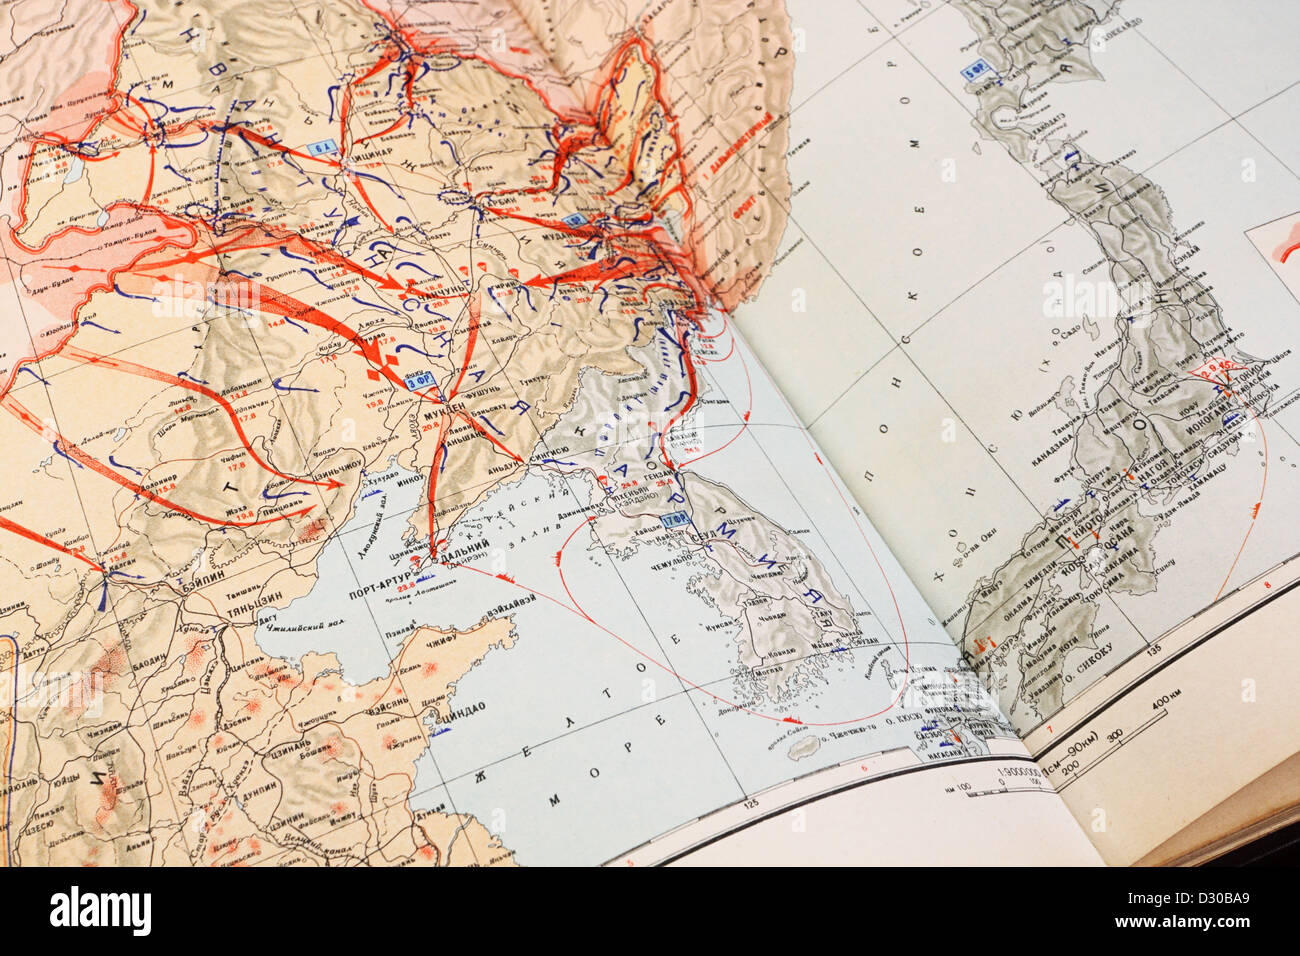 Military map of World War II on the Far East 9 August  2